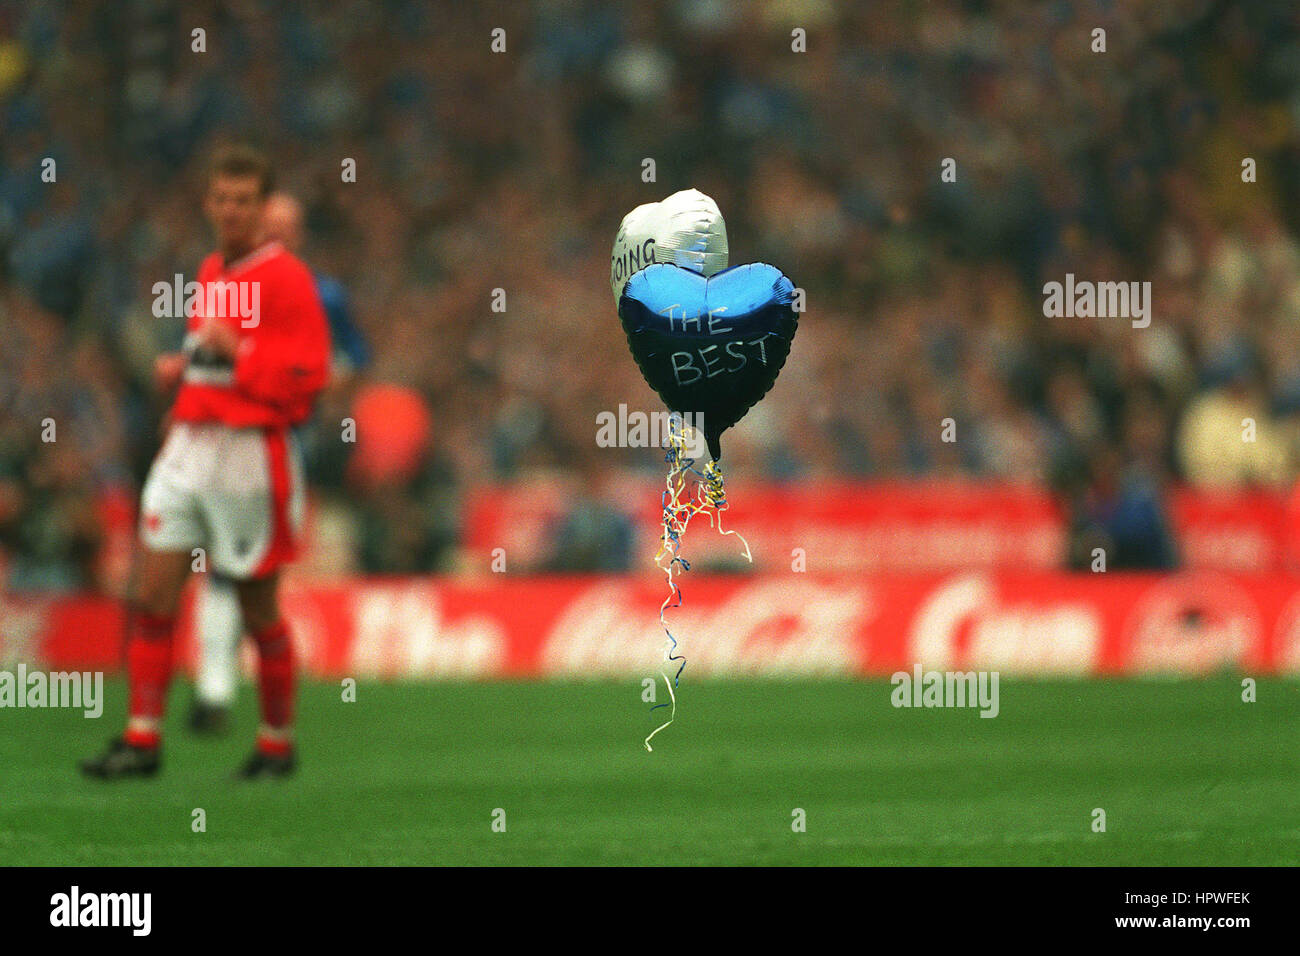 LONE CHELSEA BALOON AT FINAL COCA COLA CUP FINAL 1998 30 March 1998 - Stock Image